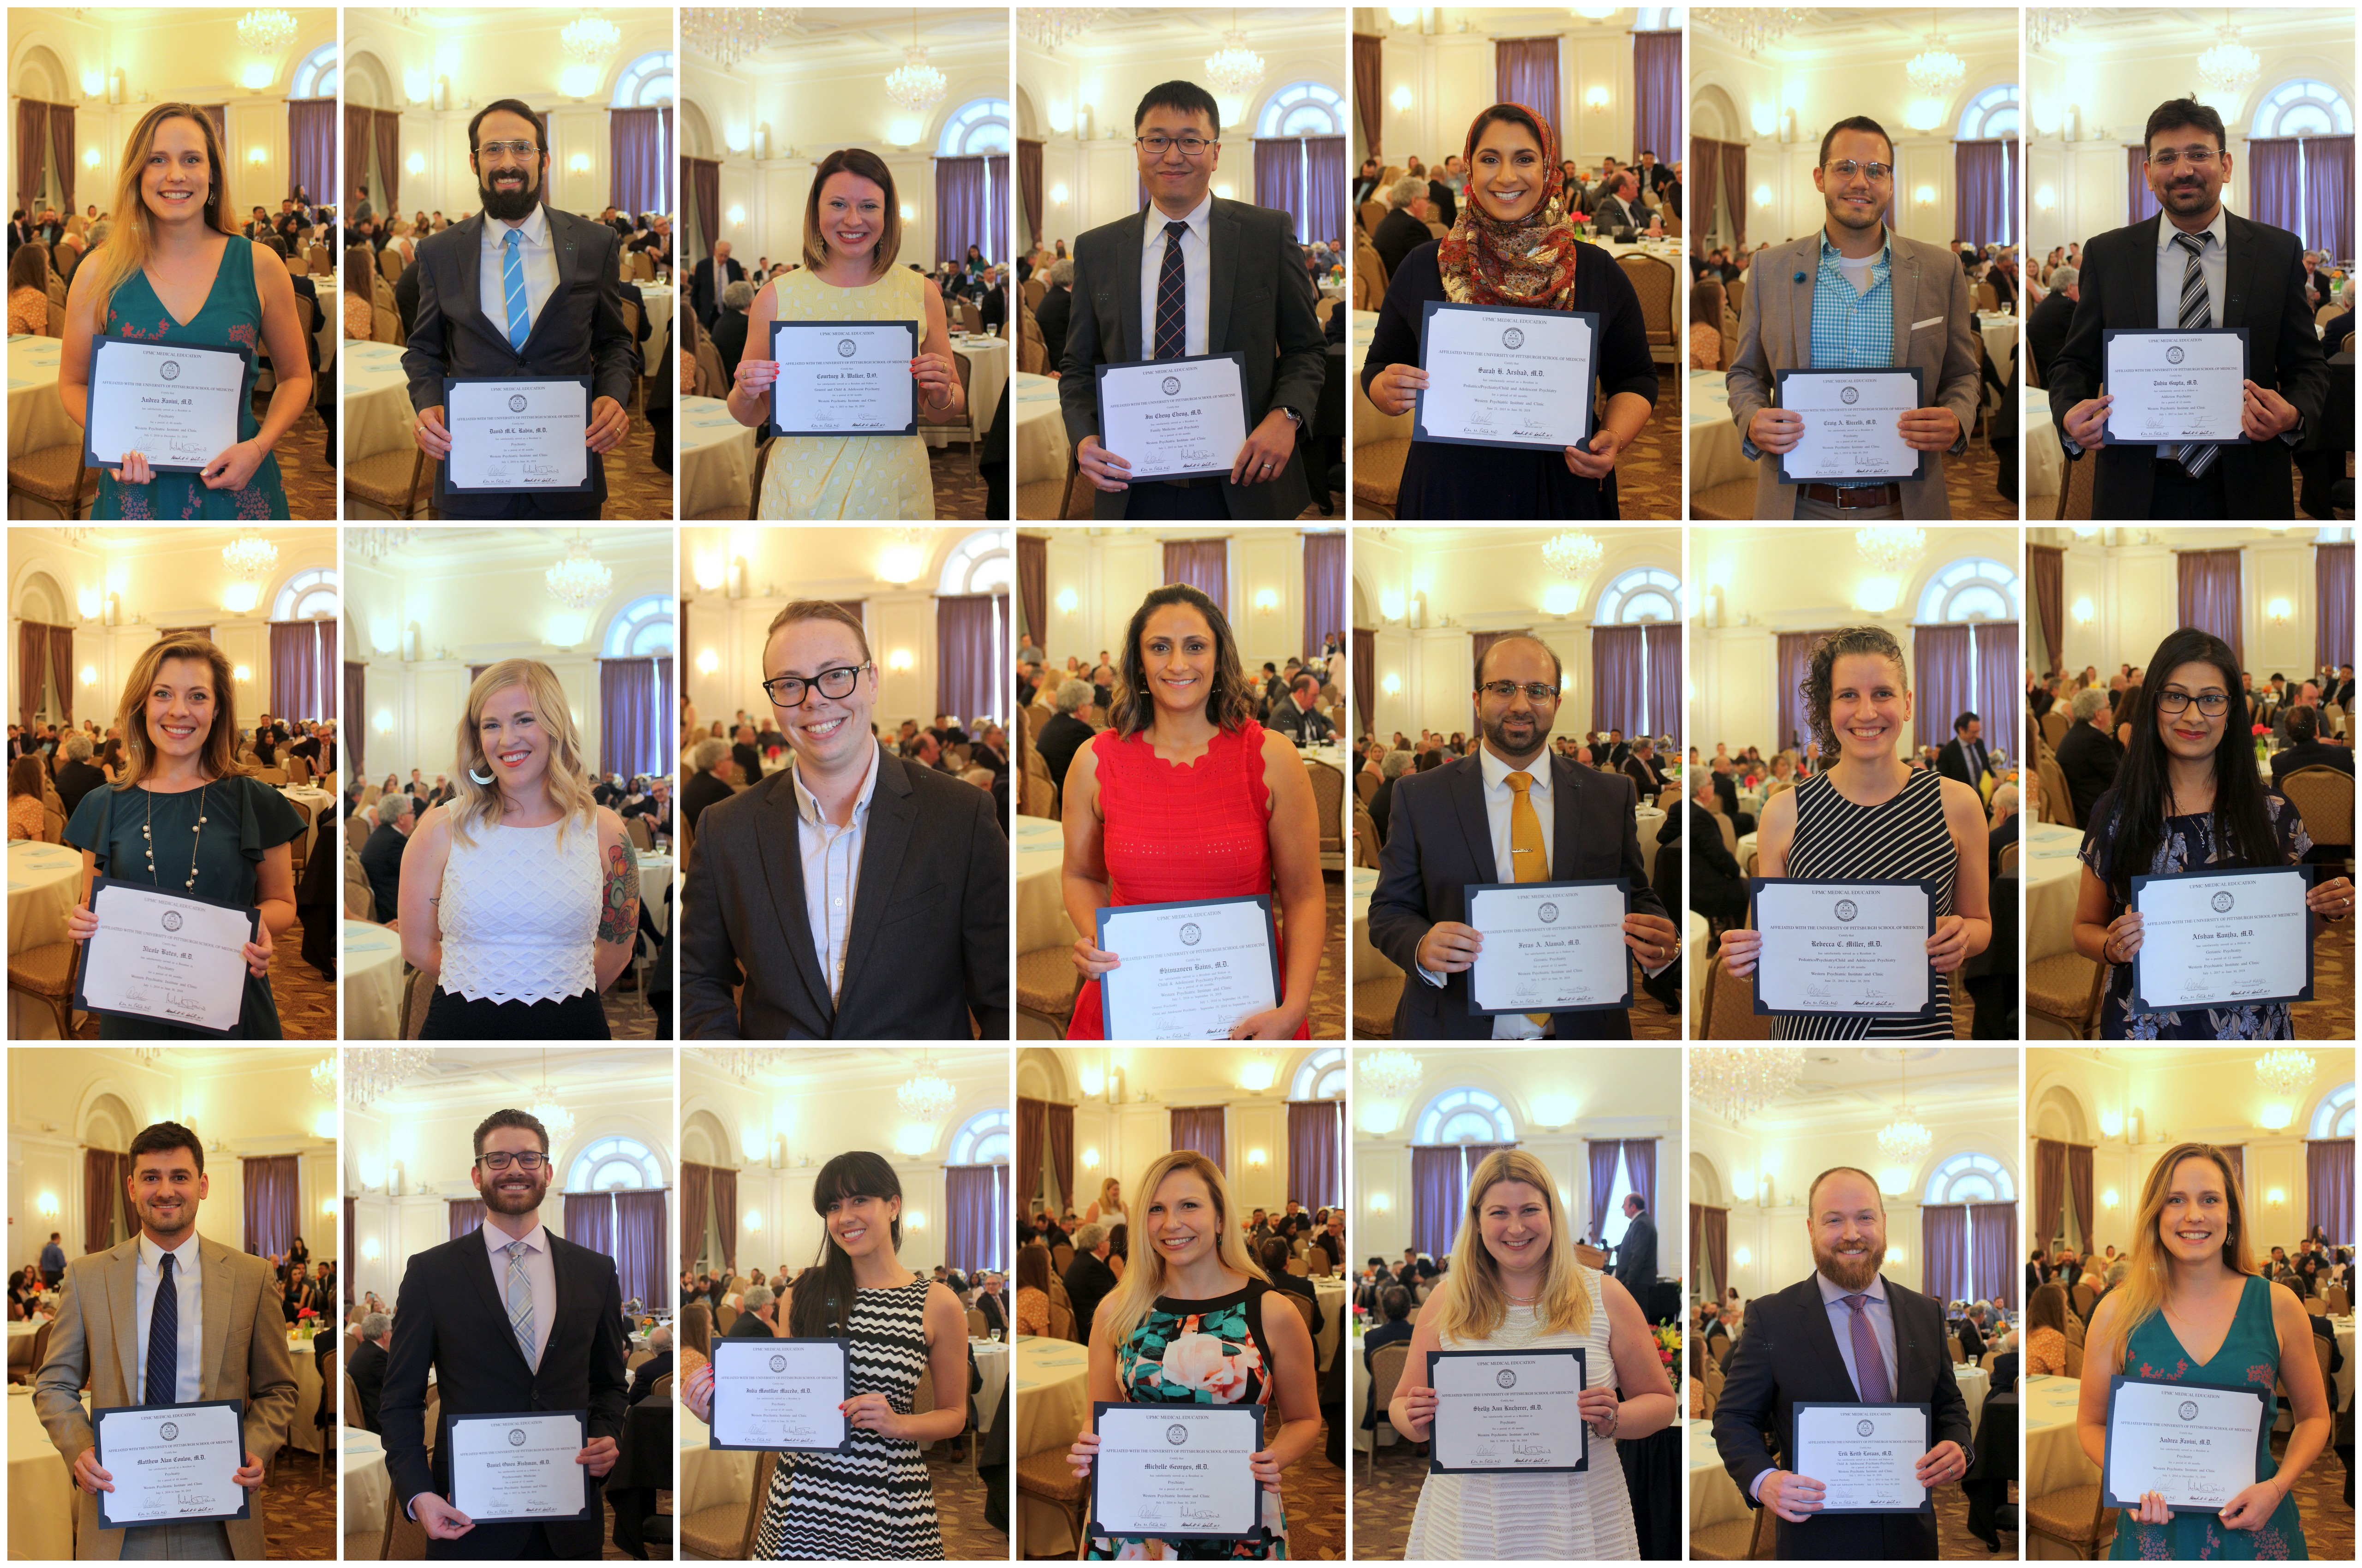 2018 Class of Resident and Fellow Graduates Celebrated at Ceremony